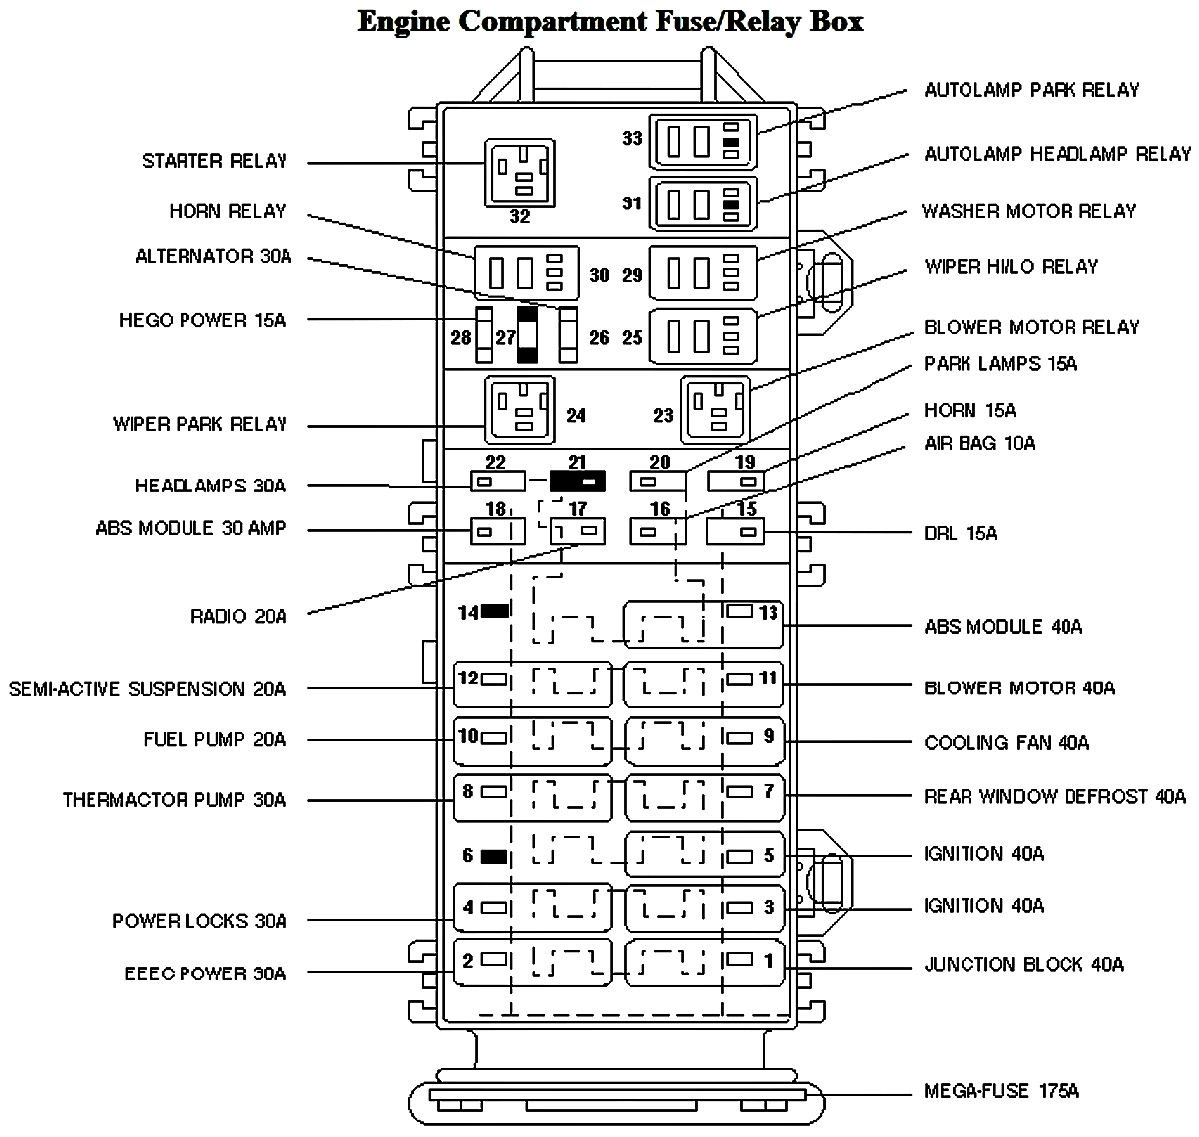 1999 mercury mountaineer fuse box diagram